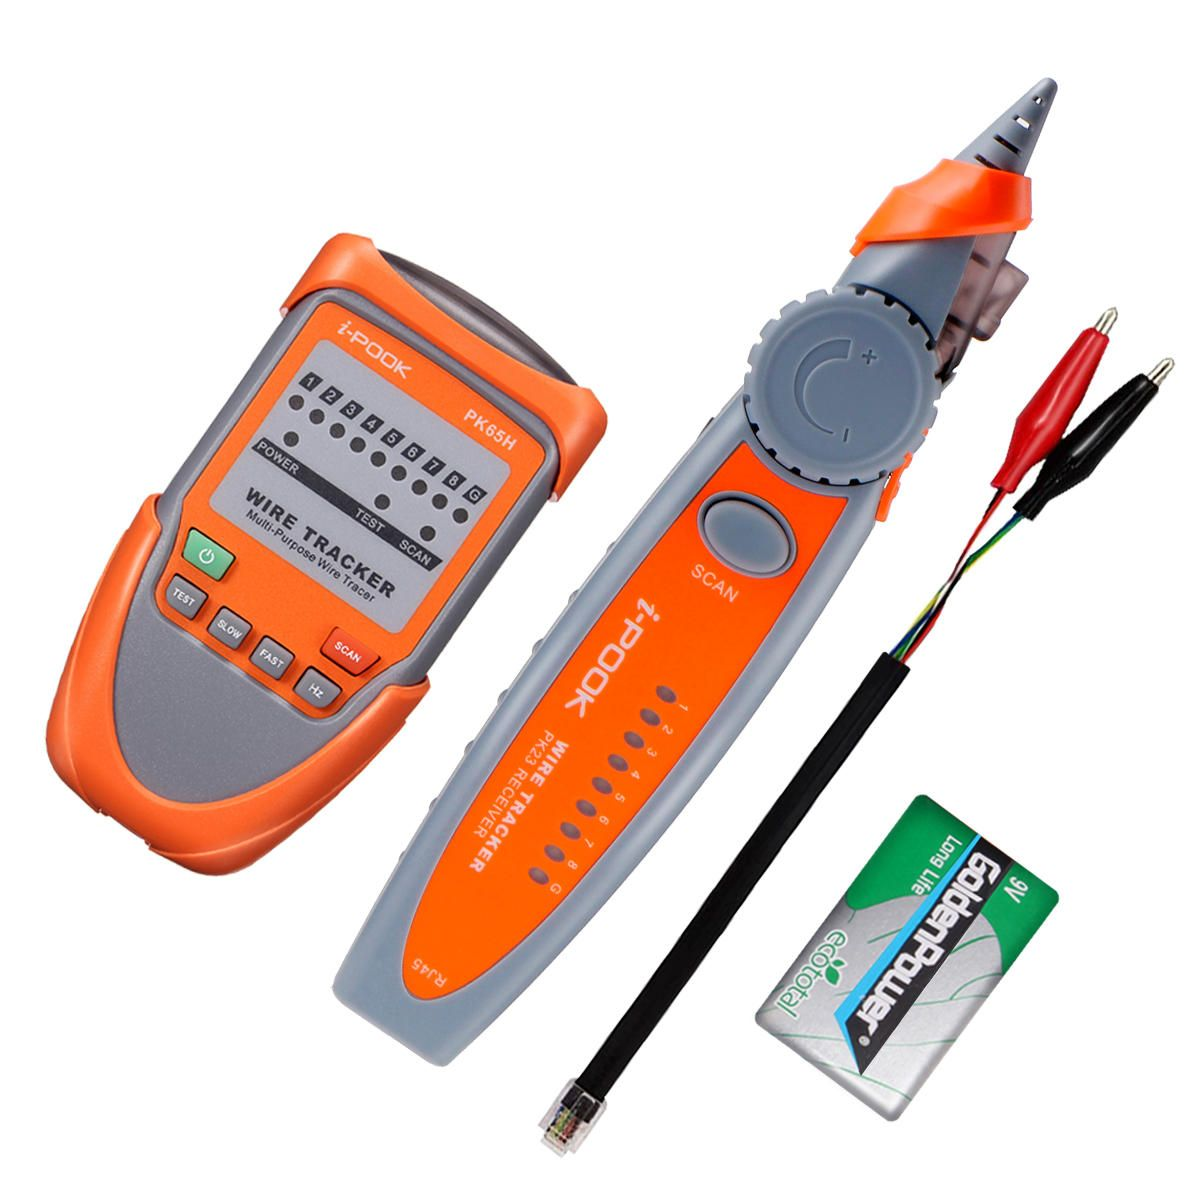 Eivotor Rj45 Rj11 Telephone Phone Wire Tracker Ethernet Lan Network Featured Electrical Circuit Tracers And Testers At Test Equipment Cable Tester